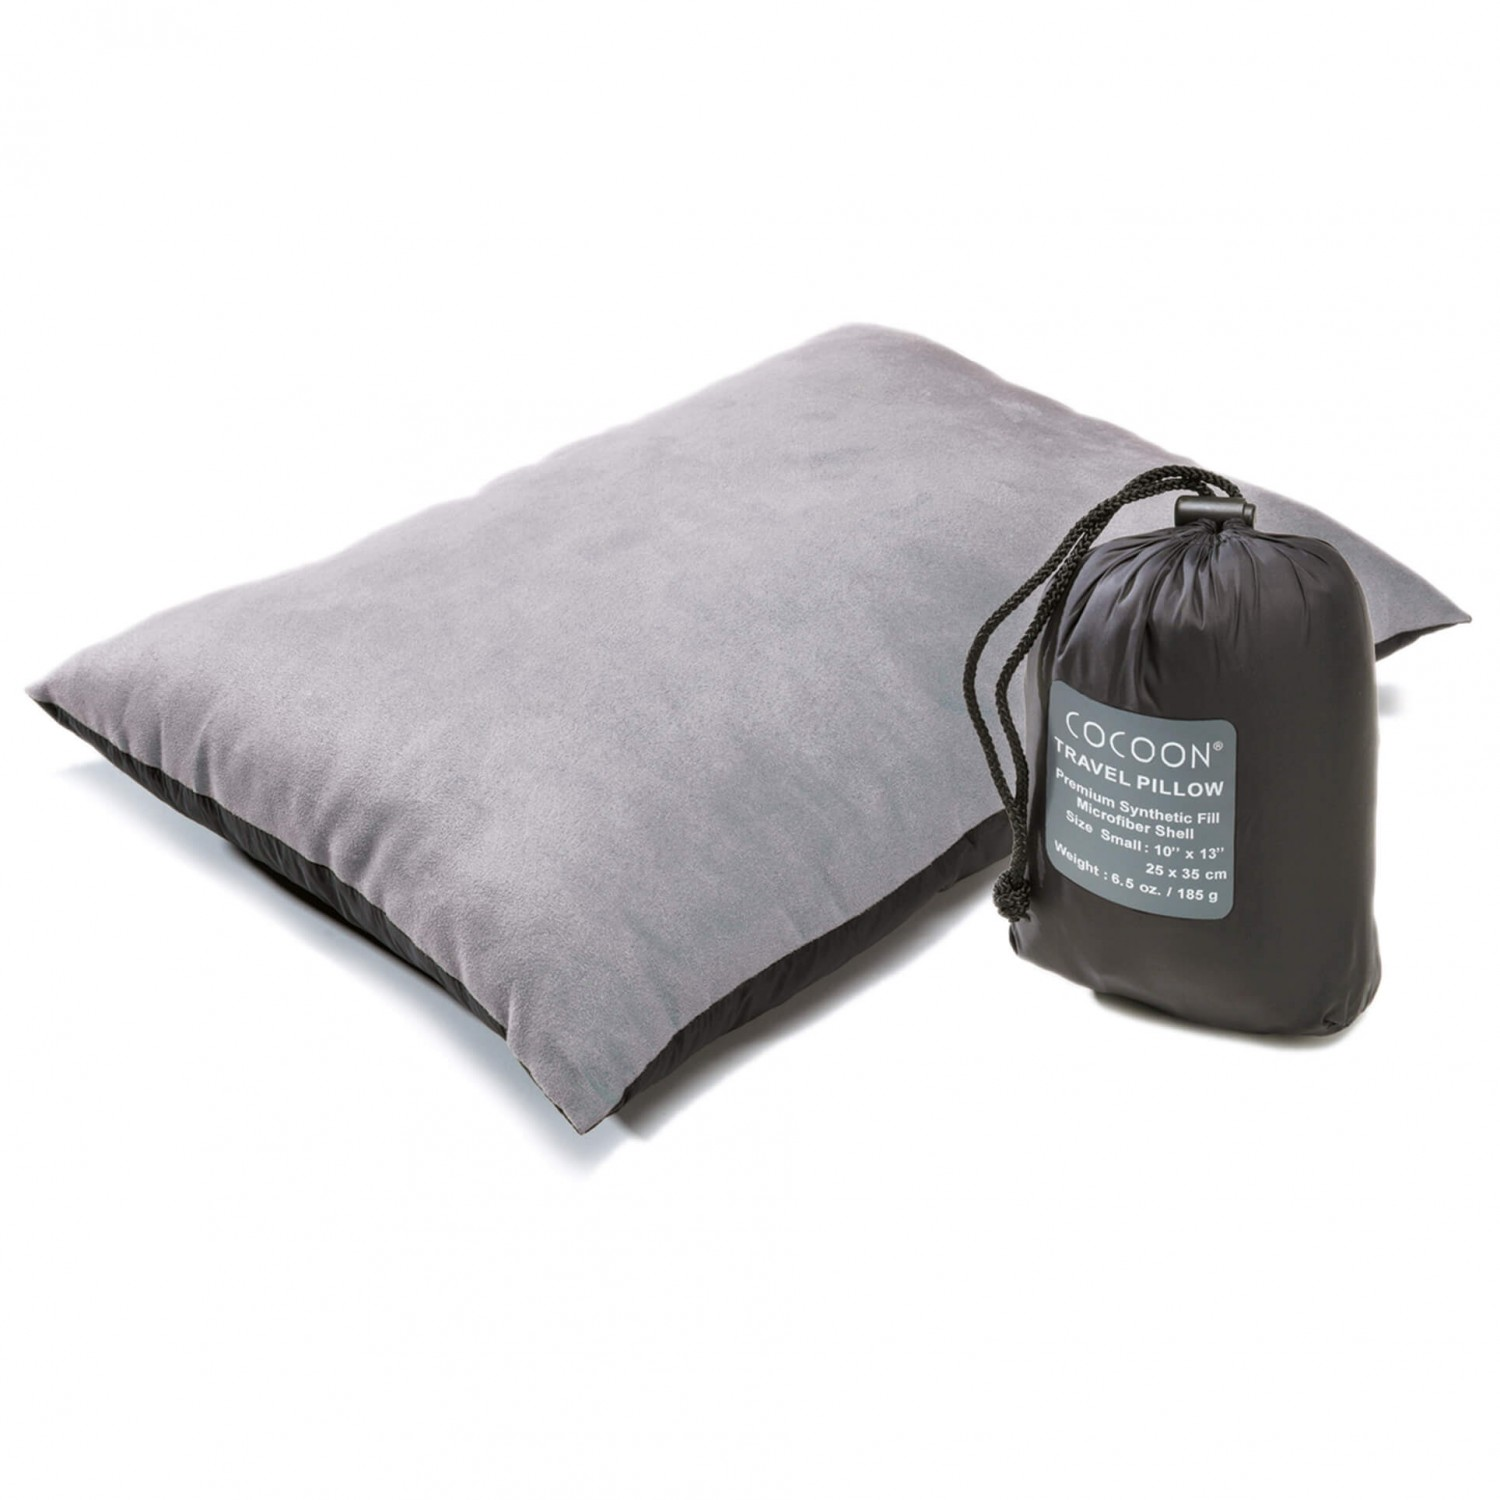 Cocoon Travel Pillow medium charcoal